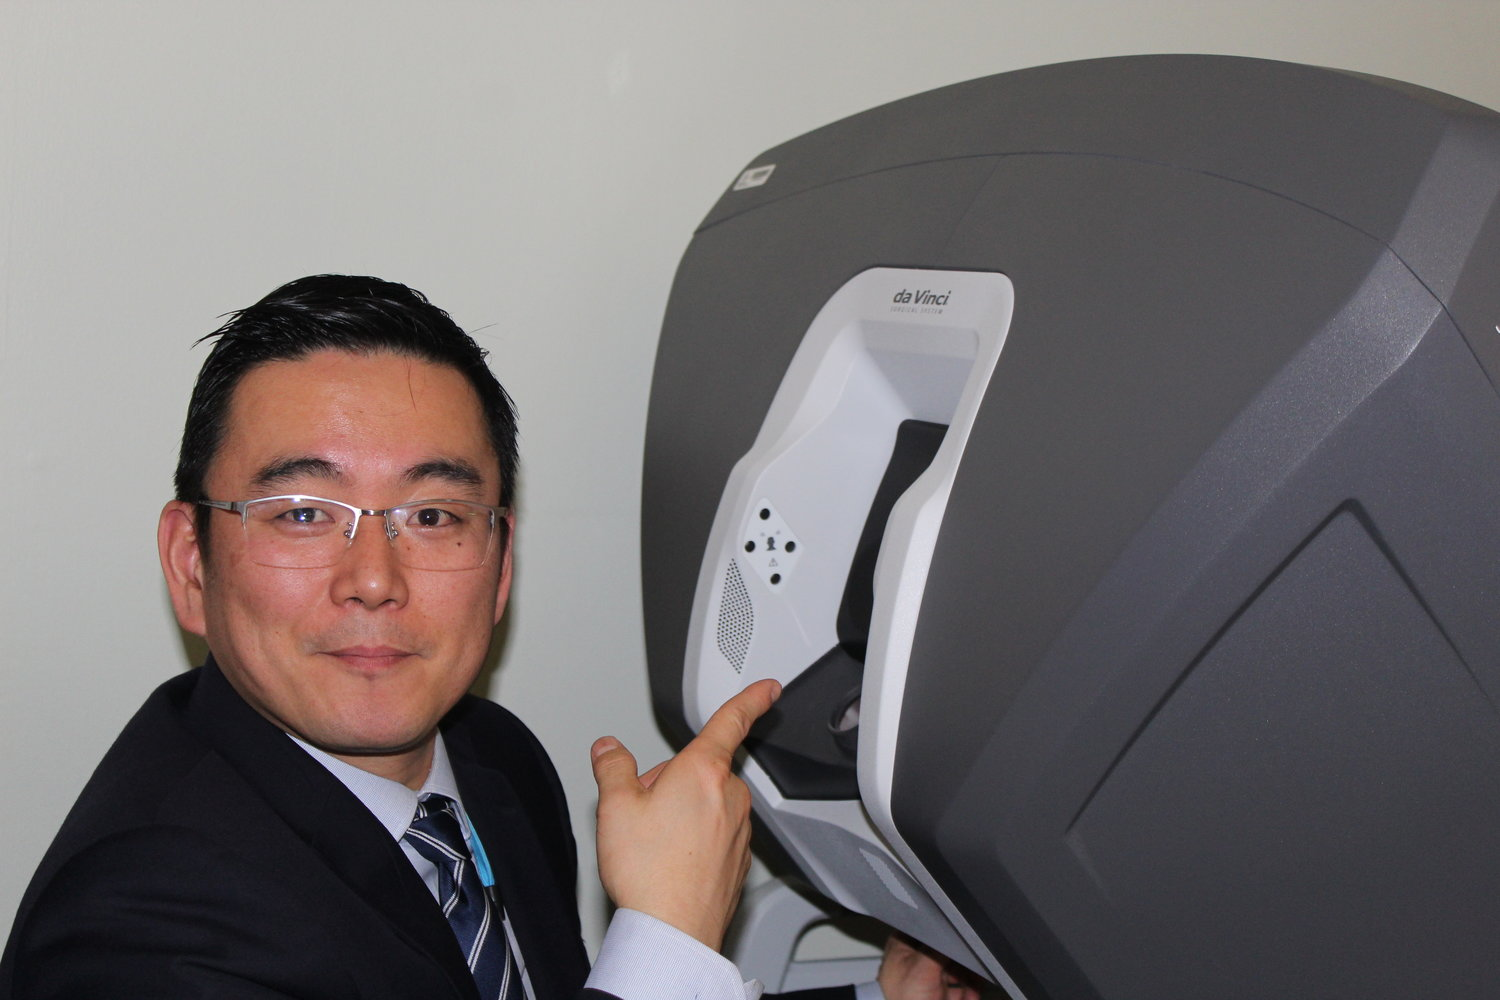 Gainosuke Sugiyama, the chief of surgery at Long Island Jewish Valley Stream, above, demonstrated how taking one's face out of the DaVinci Xi machine prevents a surgeon from operating.